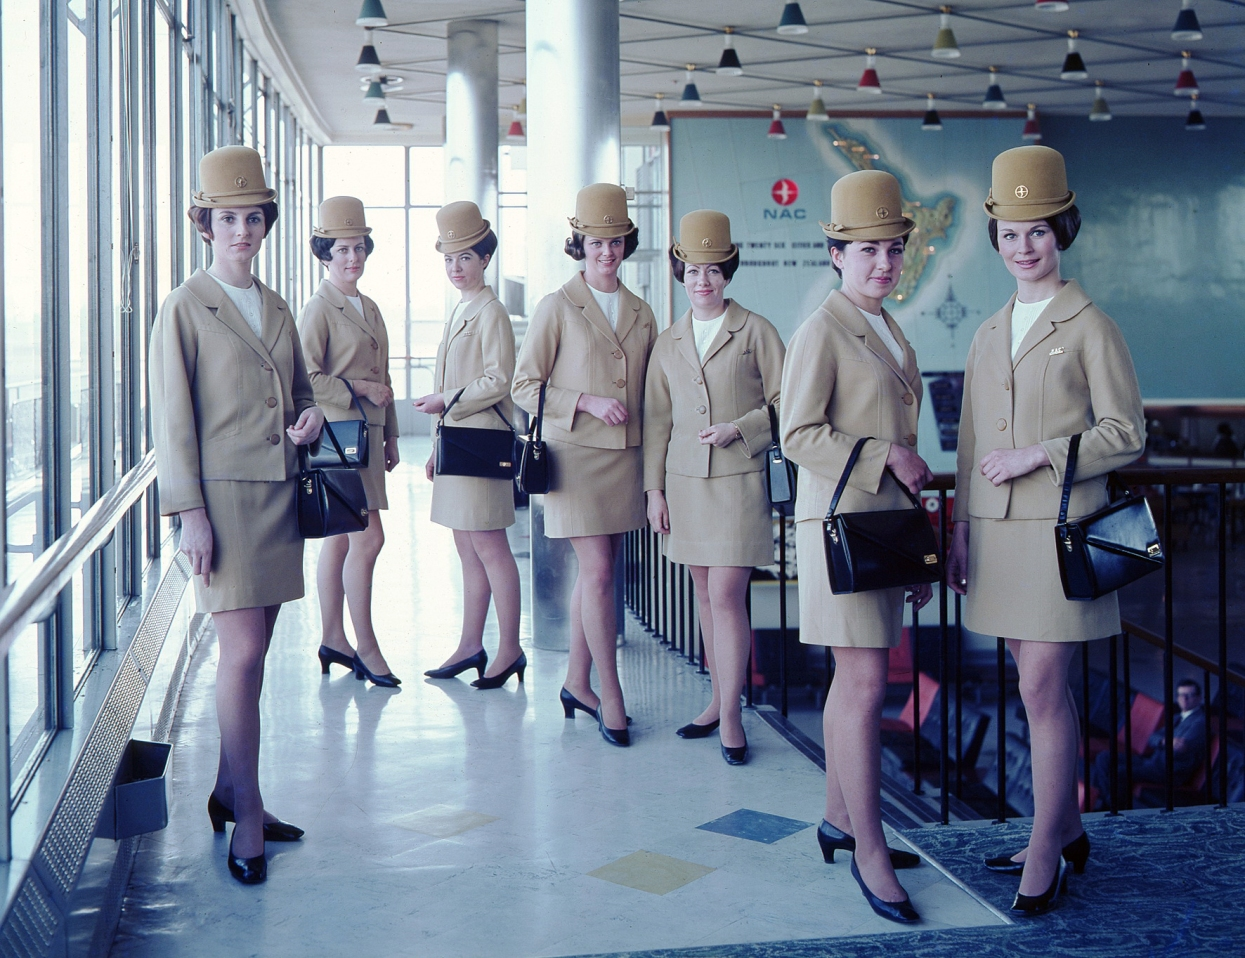 New Zealand, air hostesses from 1965. Courtesy NZ governement archives